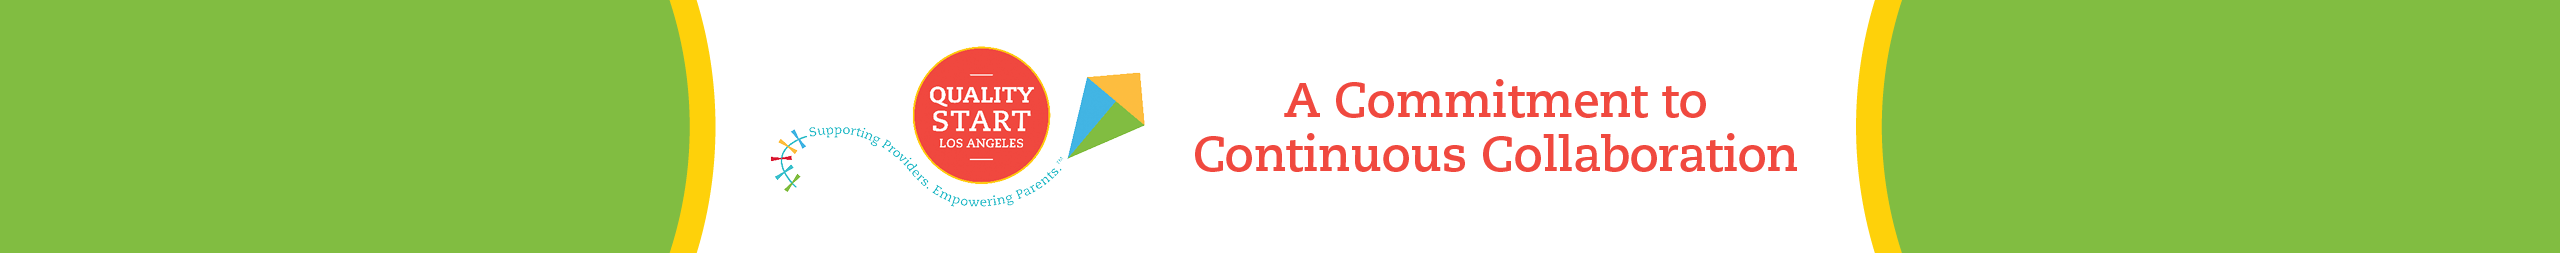 A commitment to continuous collaboration